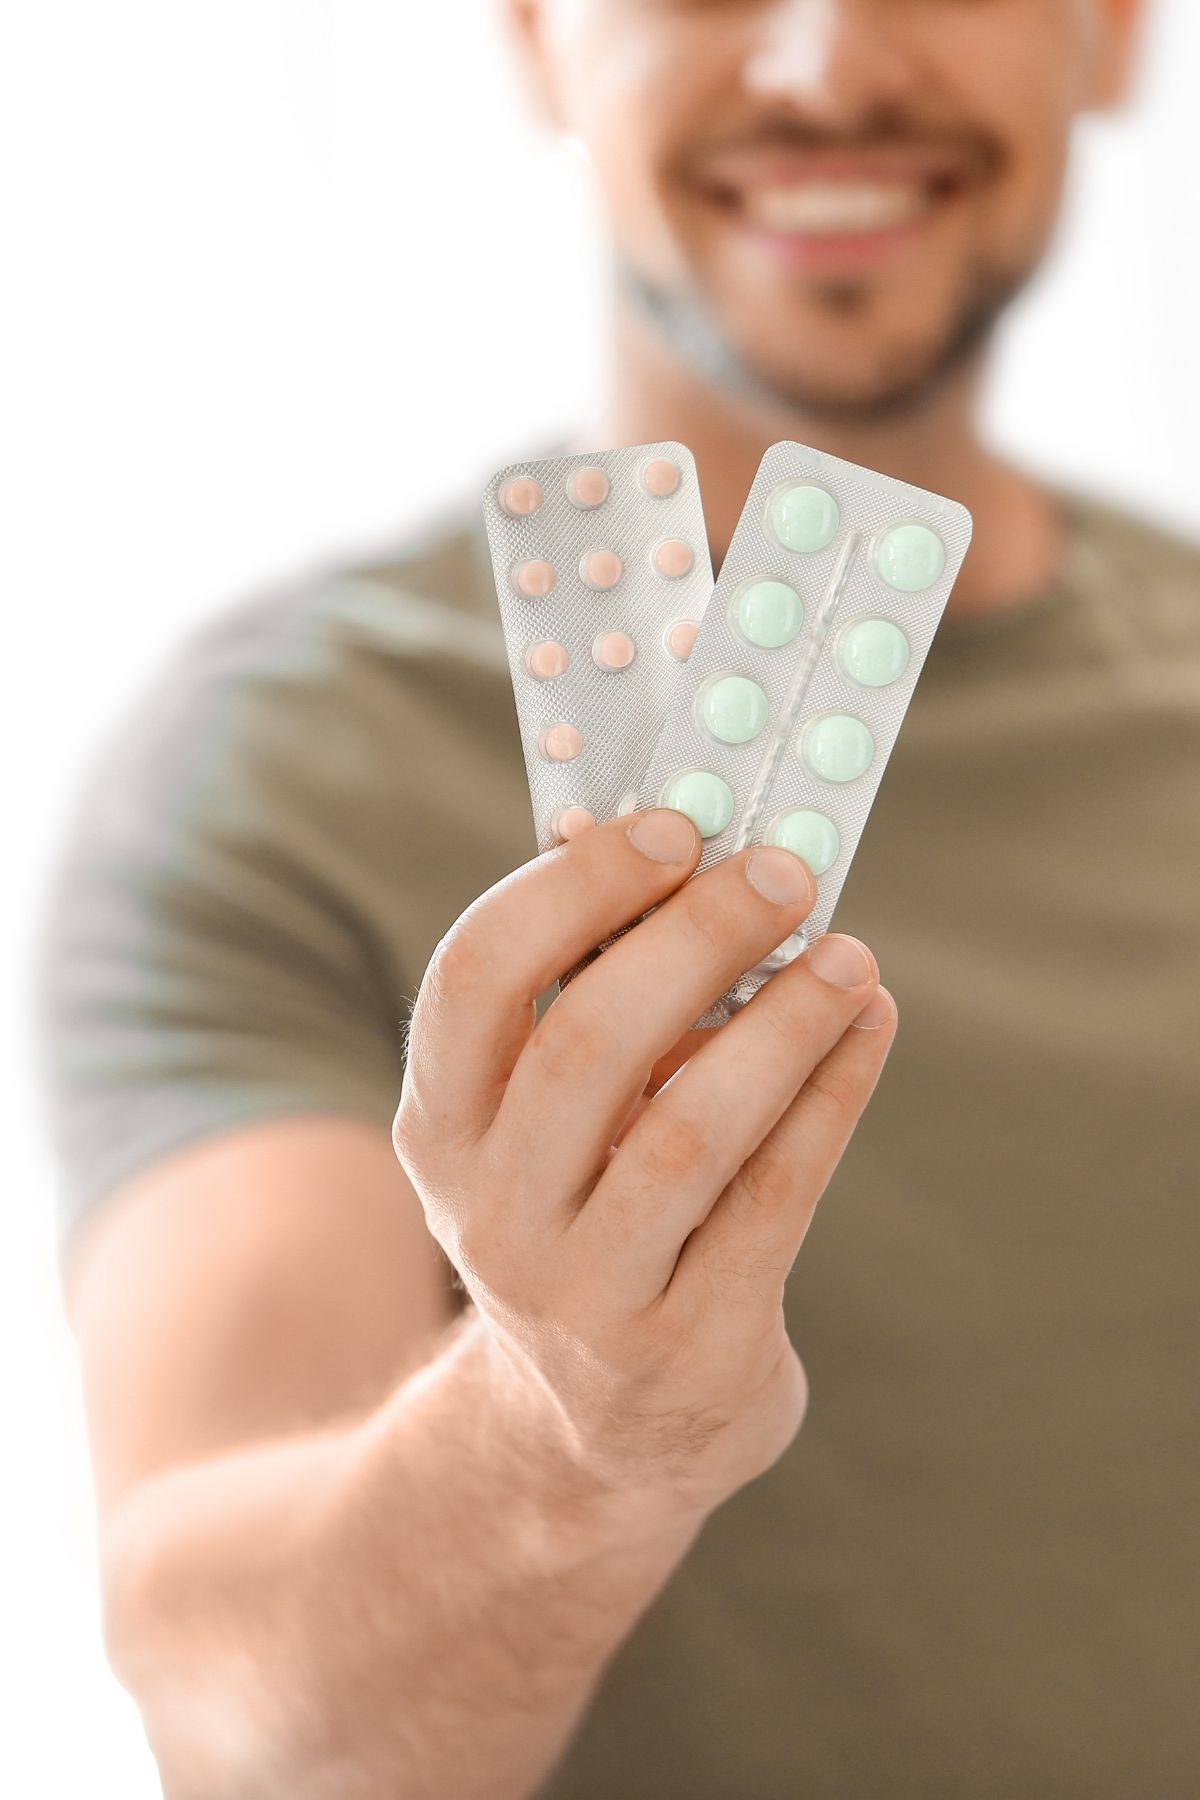 Man holds up two packs of vitamins that are used to increase sperm count for male infertility.